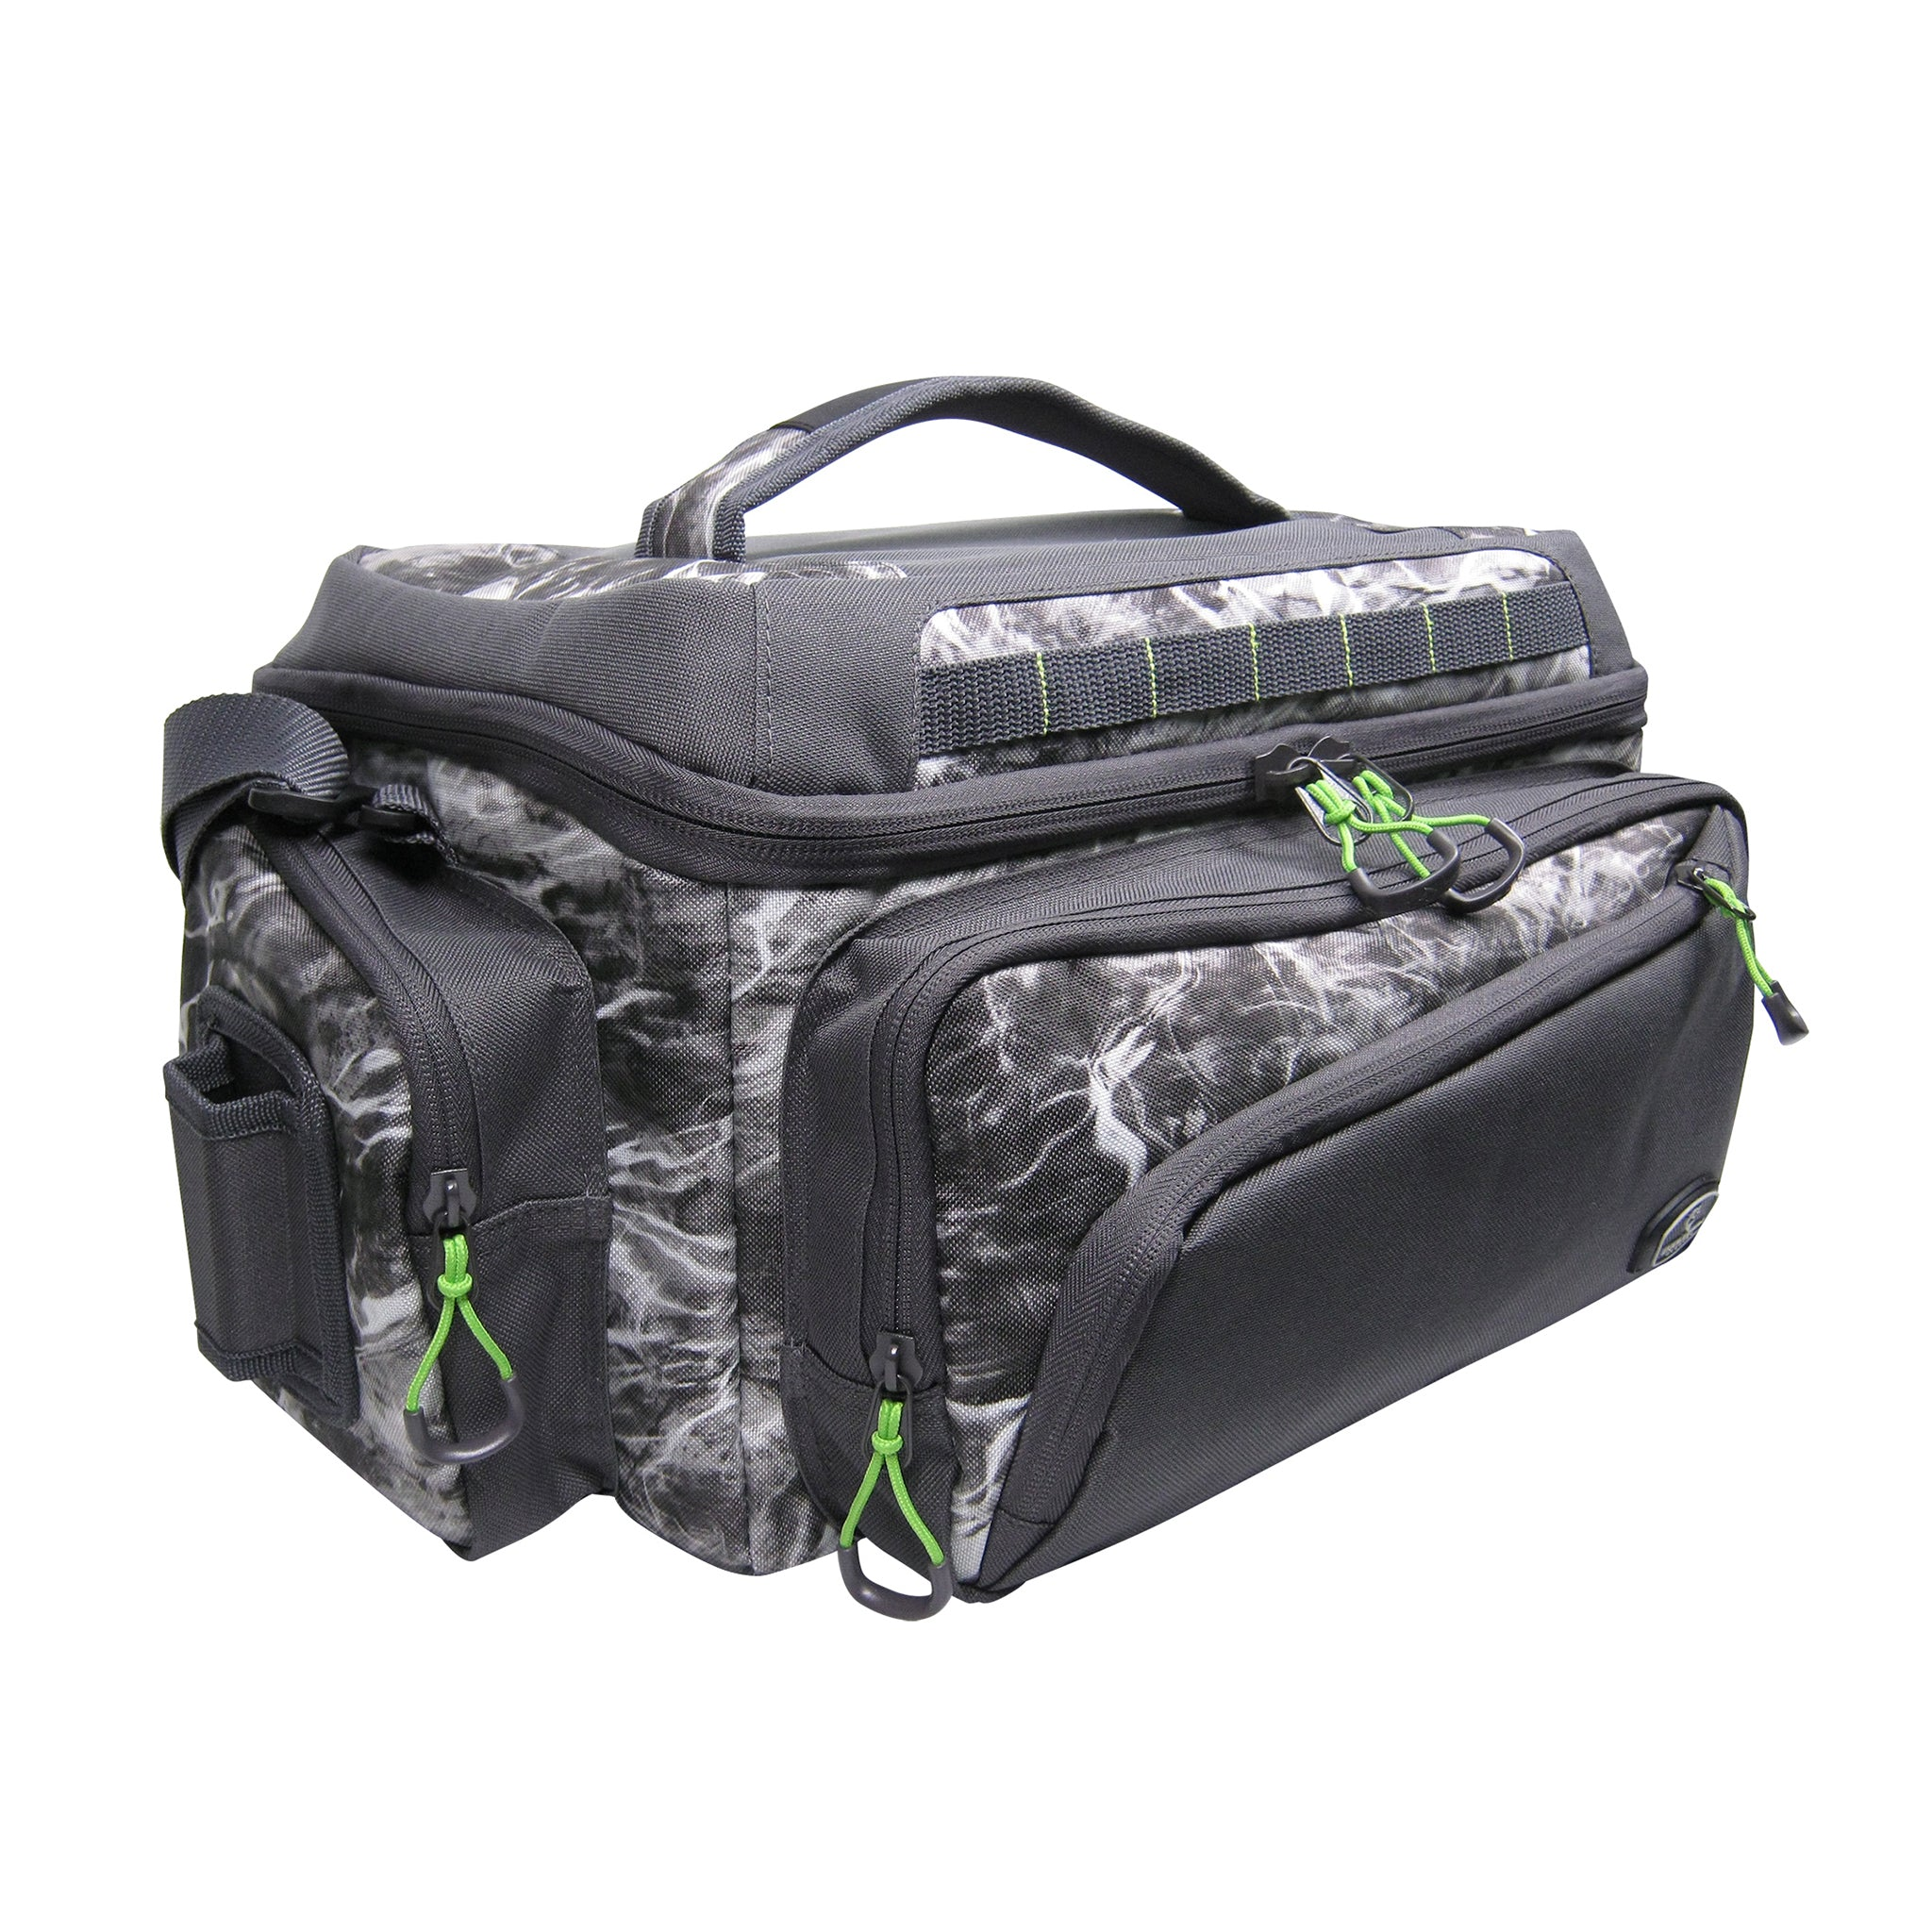 Large Mouth Mossy Oak Tackle Bag - 3600 or 3700 size